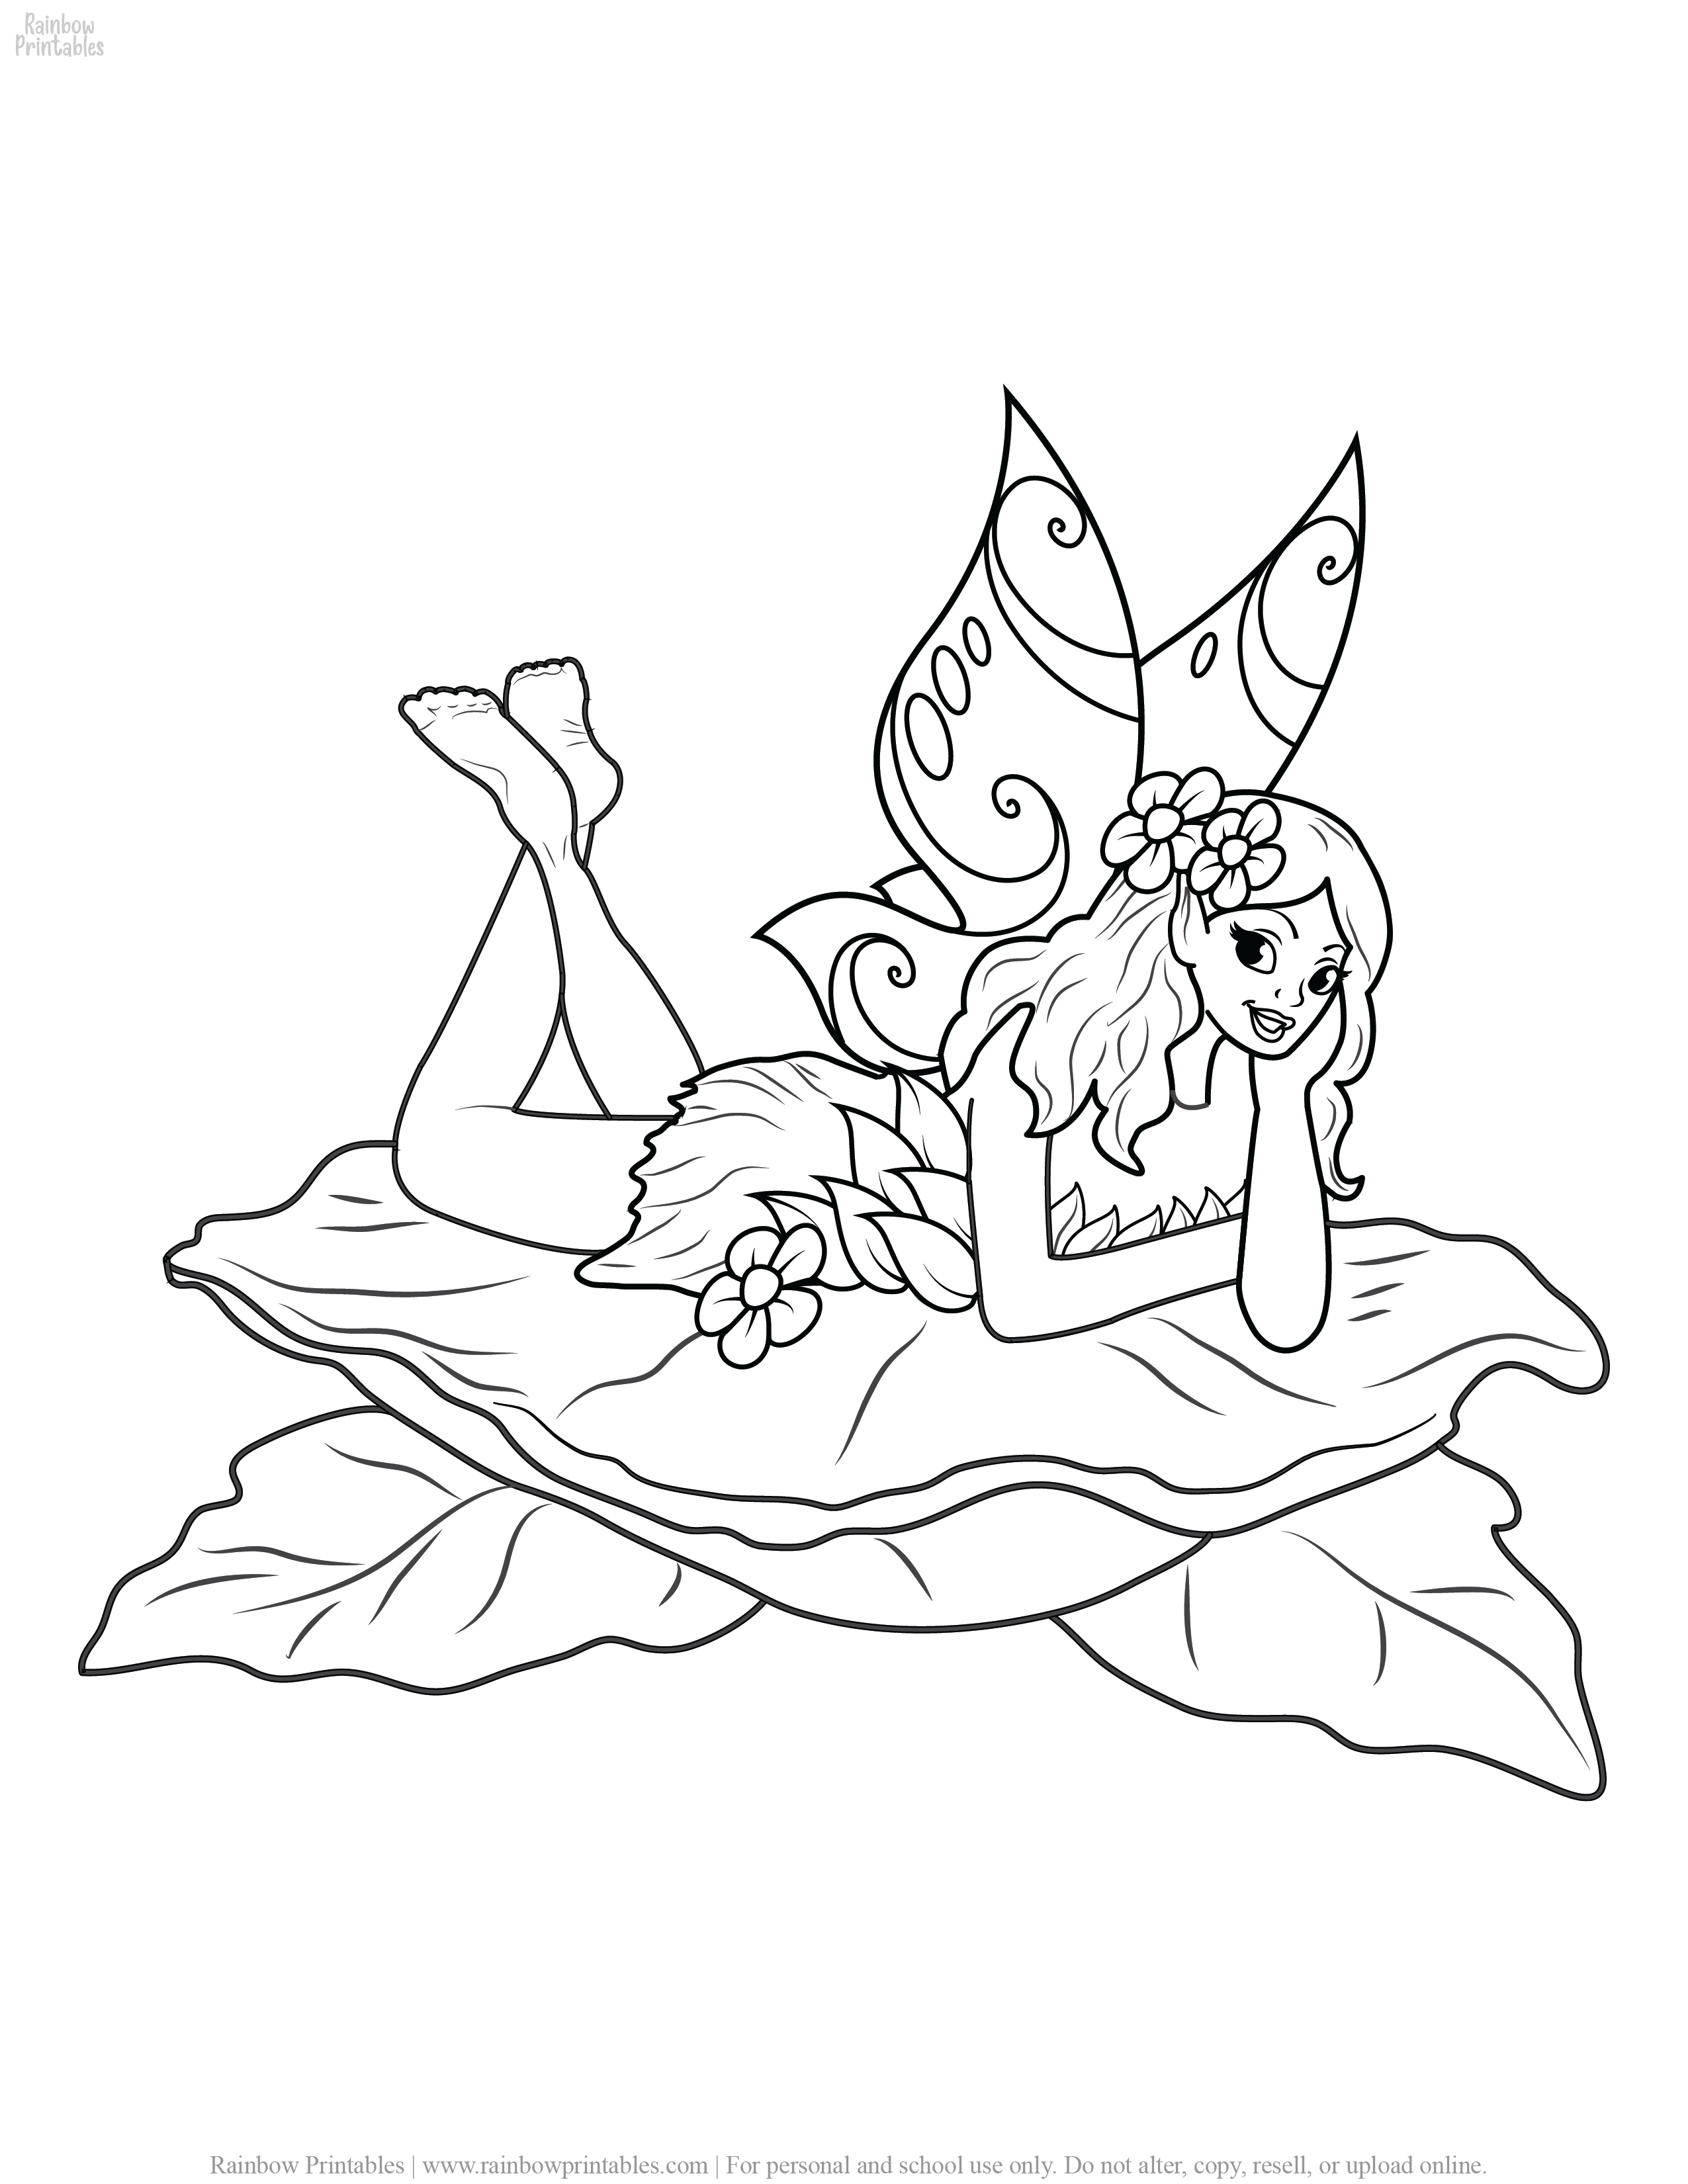 COLORING PAGES FOR GIRLS FREE PRINTABLE ACTIVITIES FOR KIDS 33